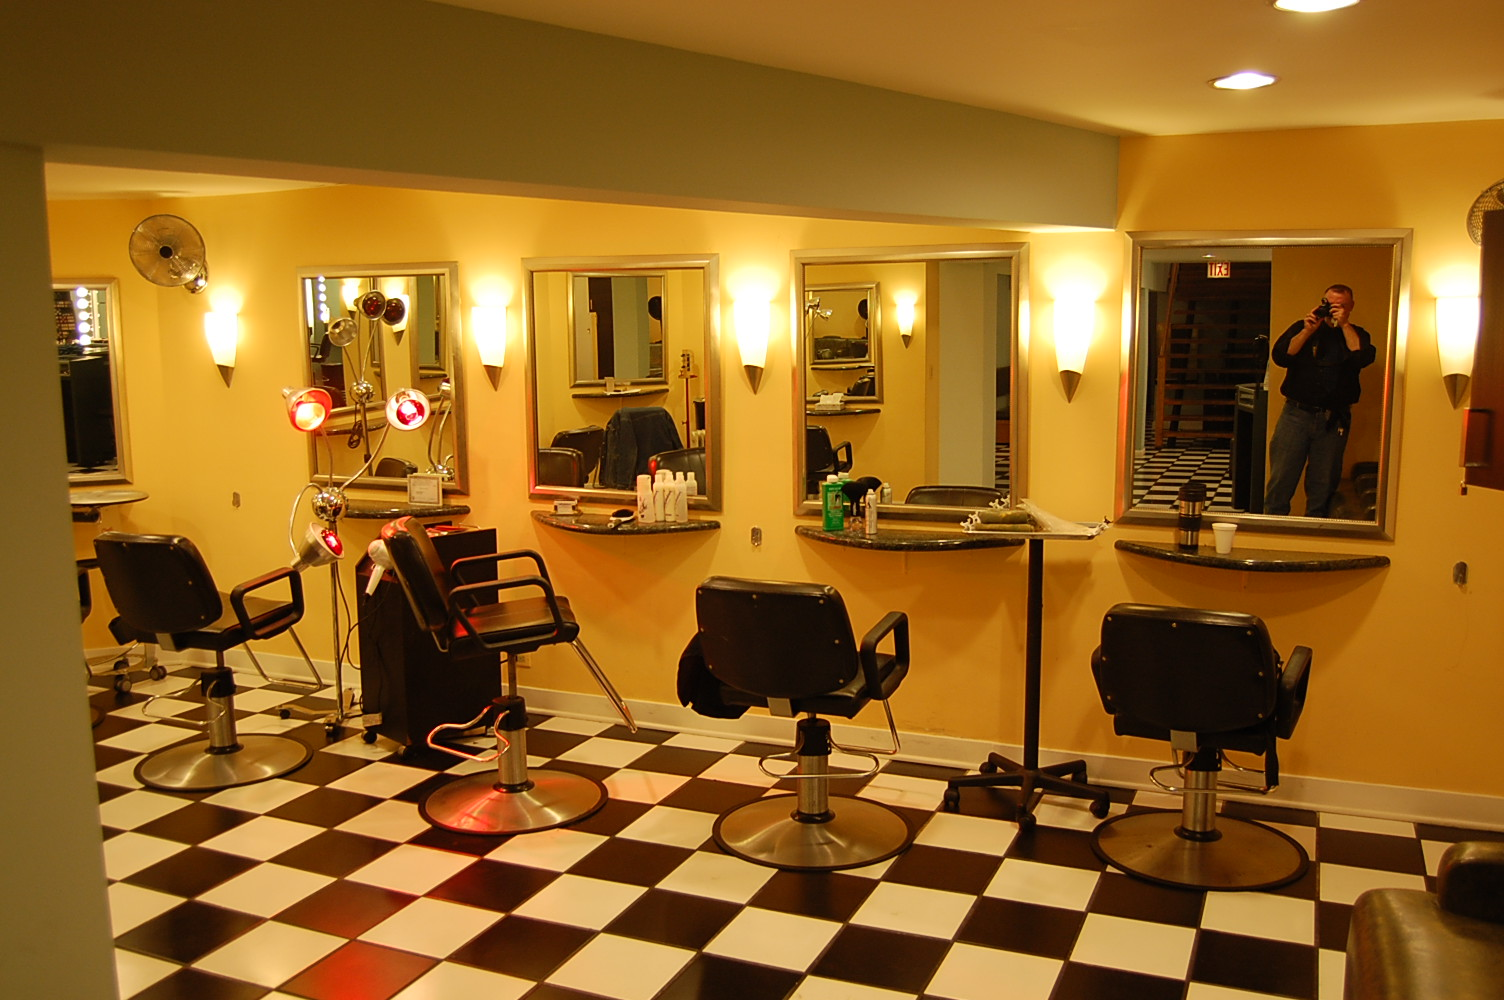 World Famous Hairdresser and Haircolorist Patrick Anderson has moved to Parto Naderi Salon.